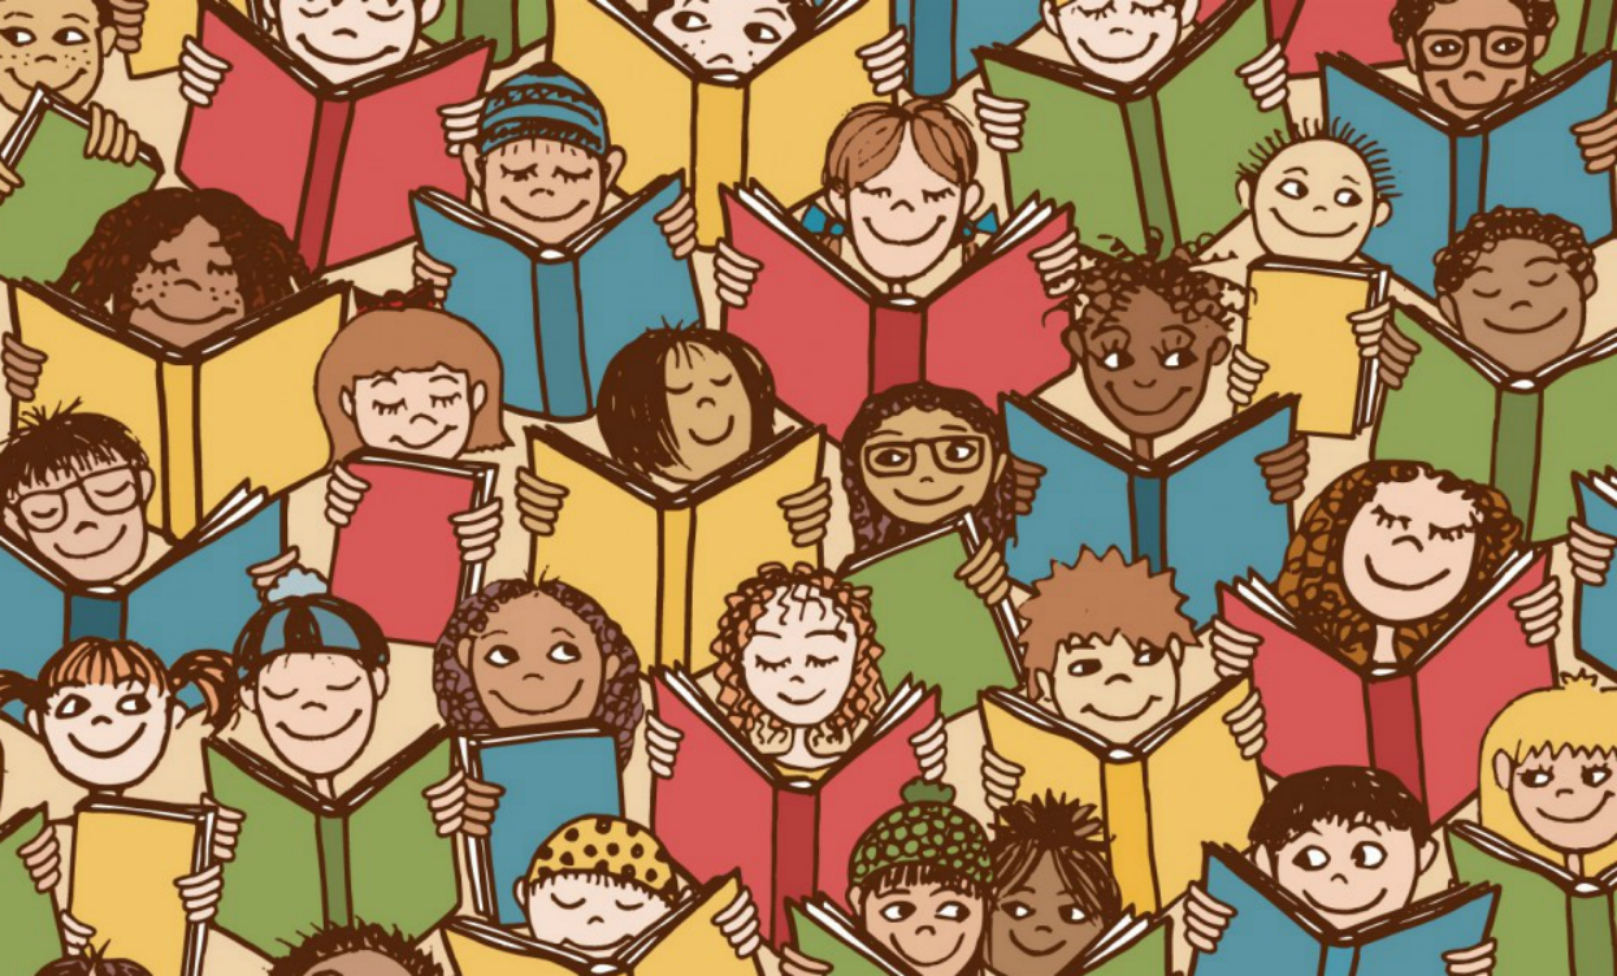 Why We Need More Diverse Books - Chicago Monitor